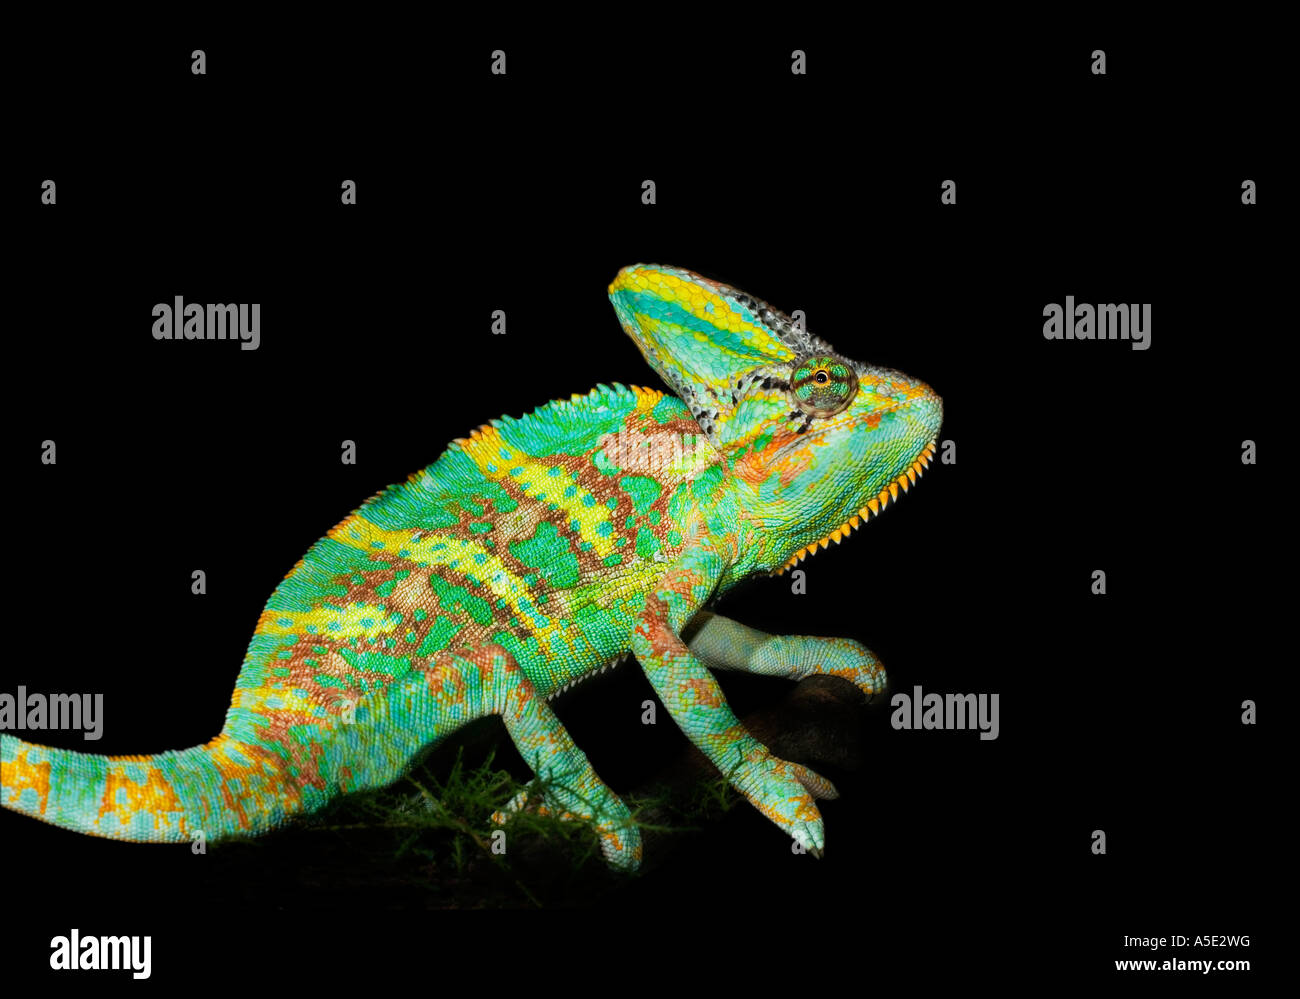 1 one single green yellow helmet chameleon on black plain background cut out cutout Veiled - Stock Image